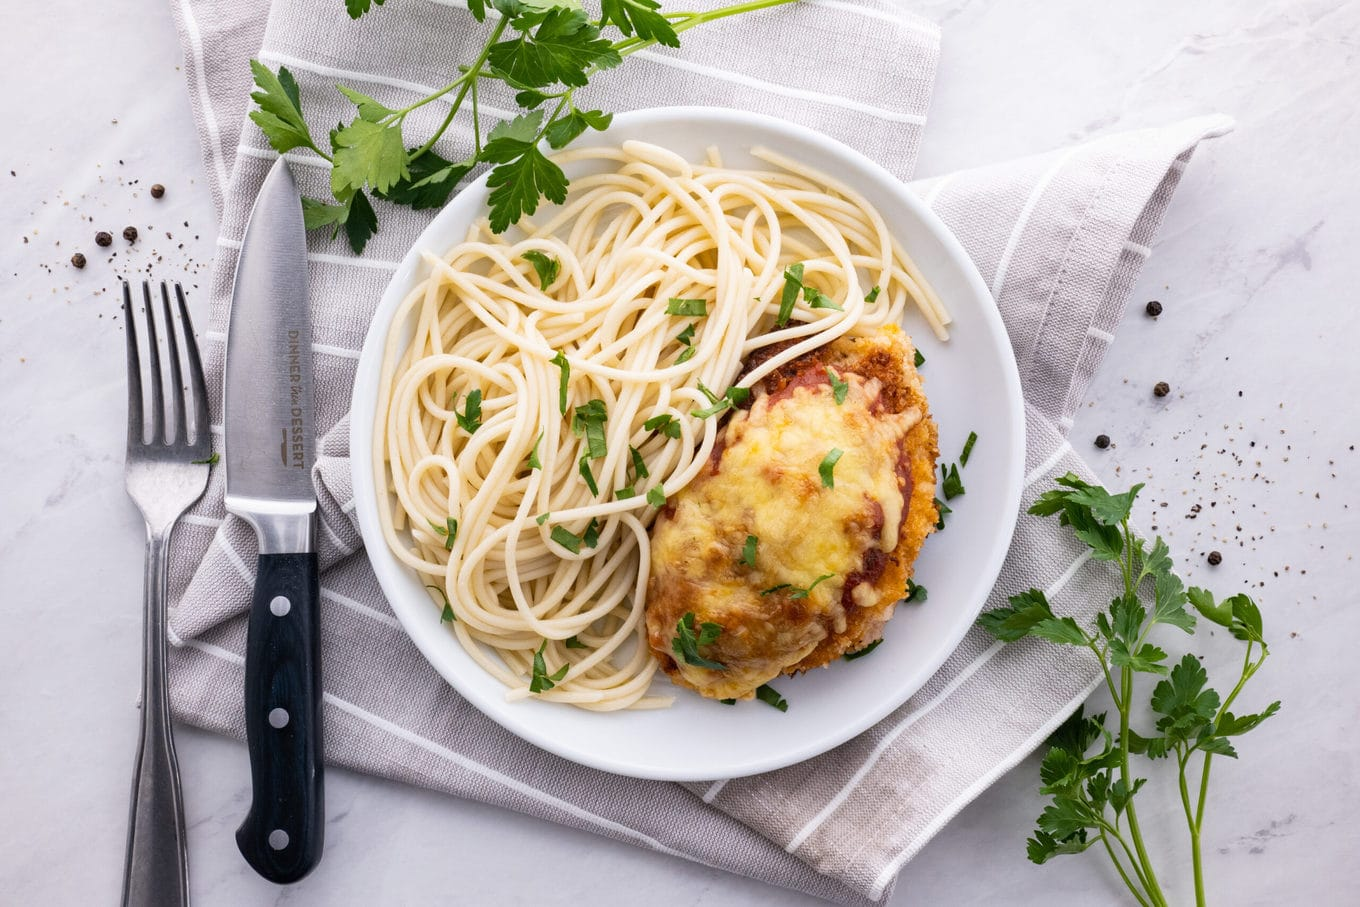 Easy Chicken Parmesan on plate with pasta